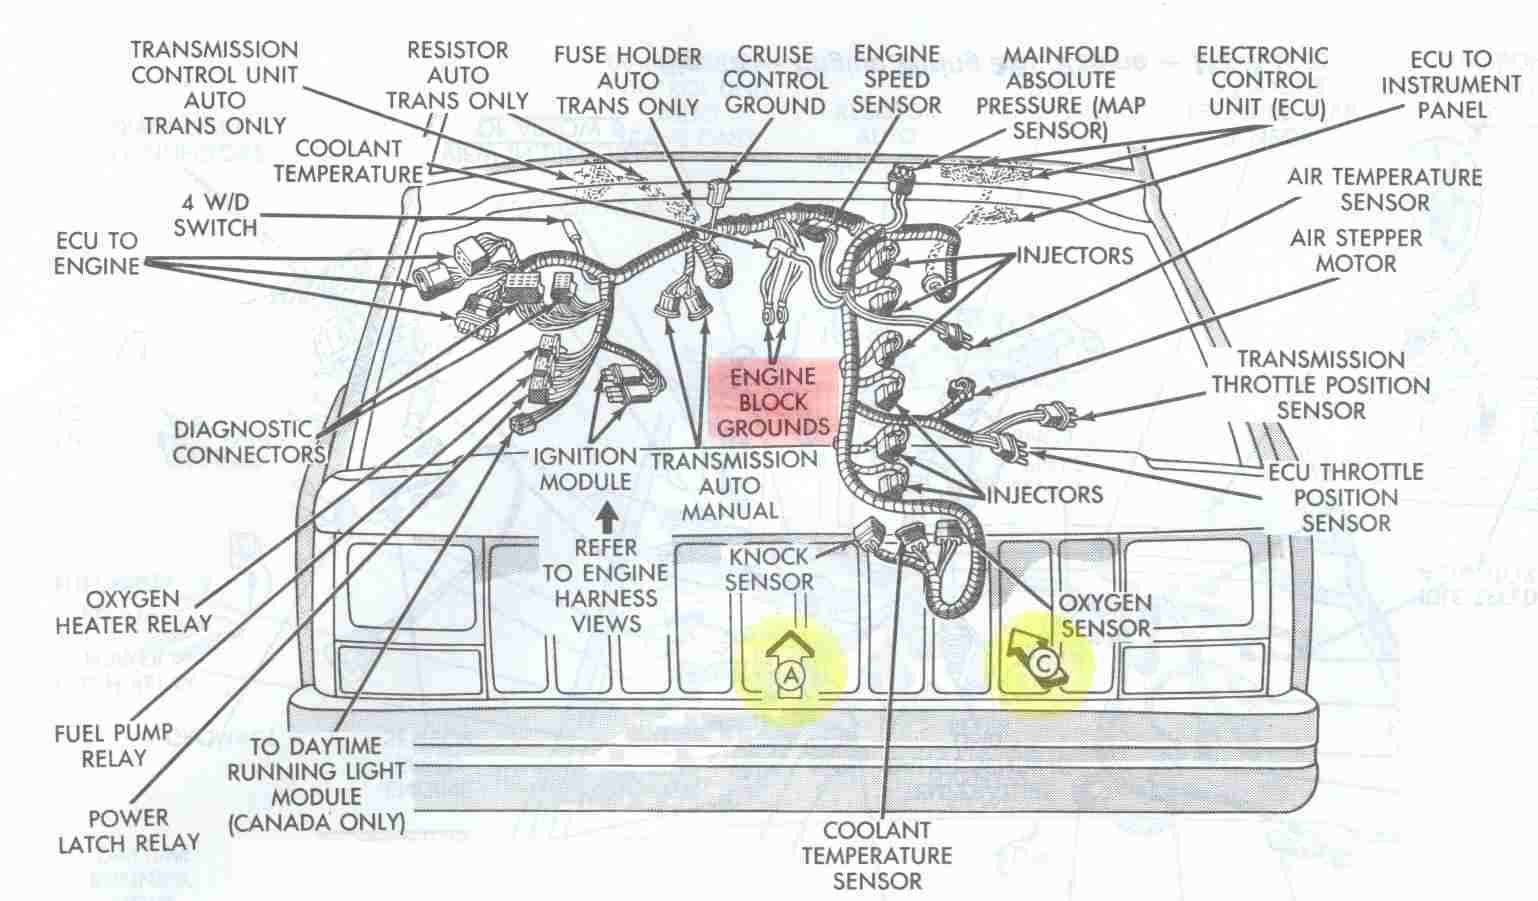 Engine Bay Schematic Showing Major Electrical Ground Points For